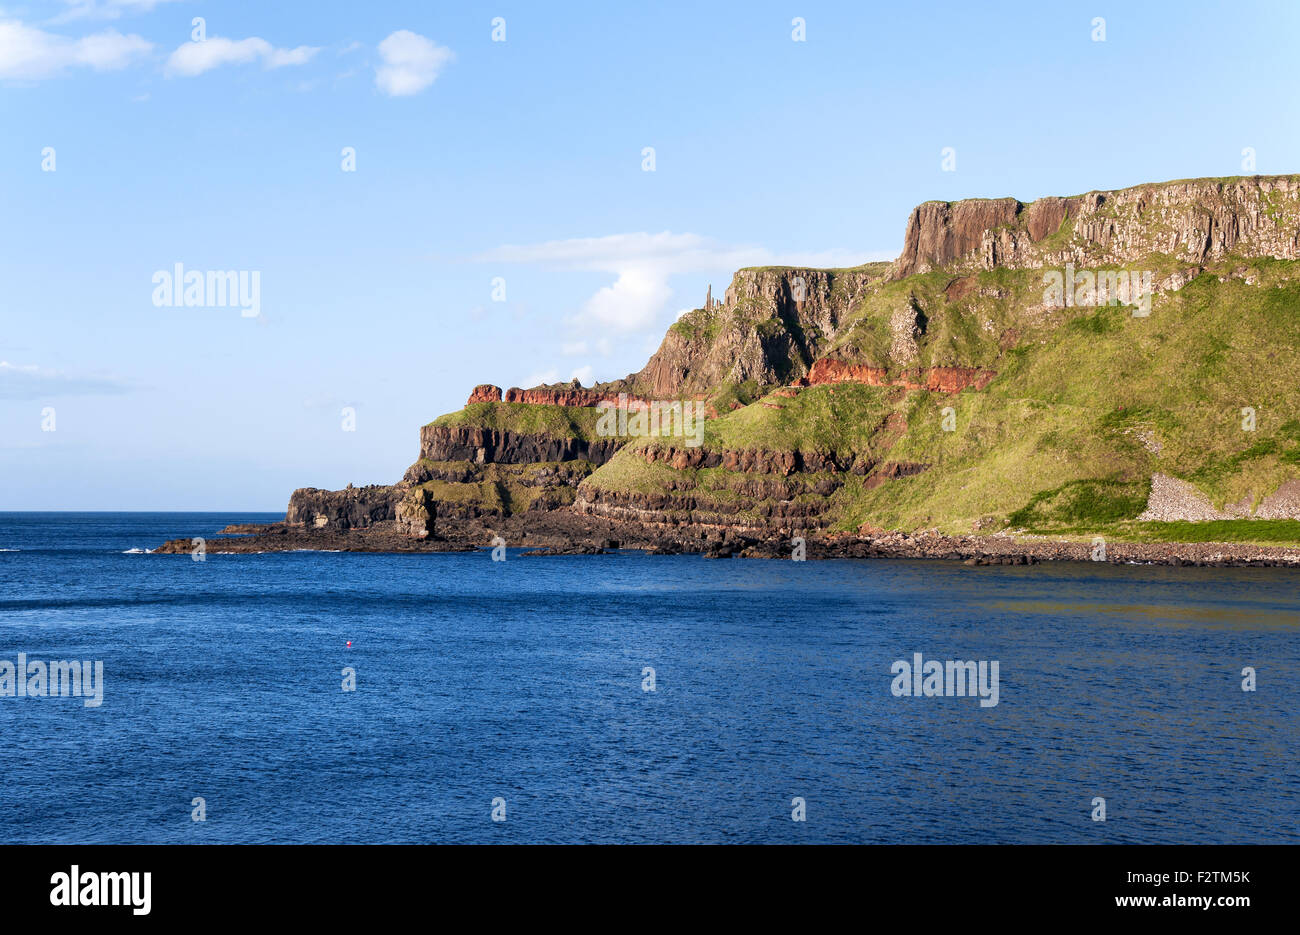 Cliffs near Giants Causeway in Northern Ireland. Unique geological formation - Stock Image